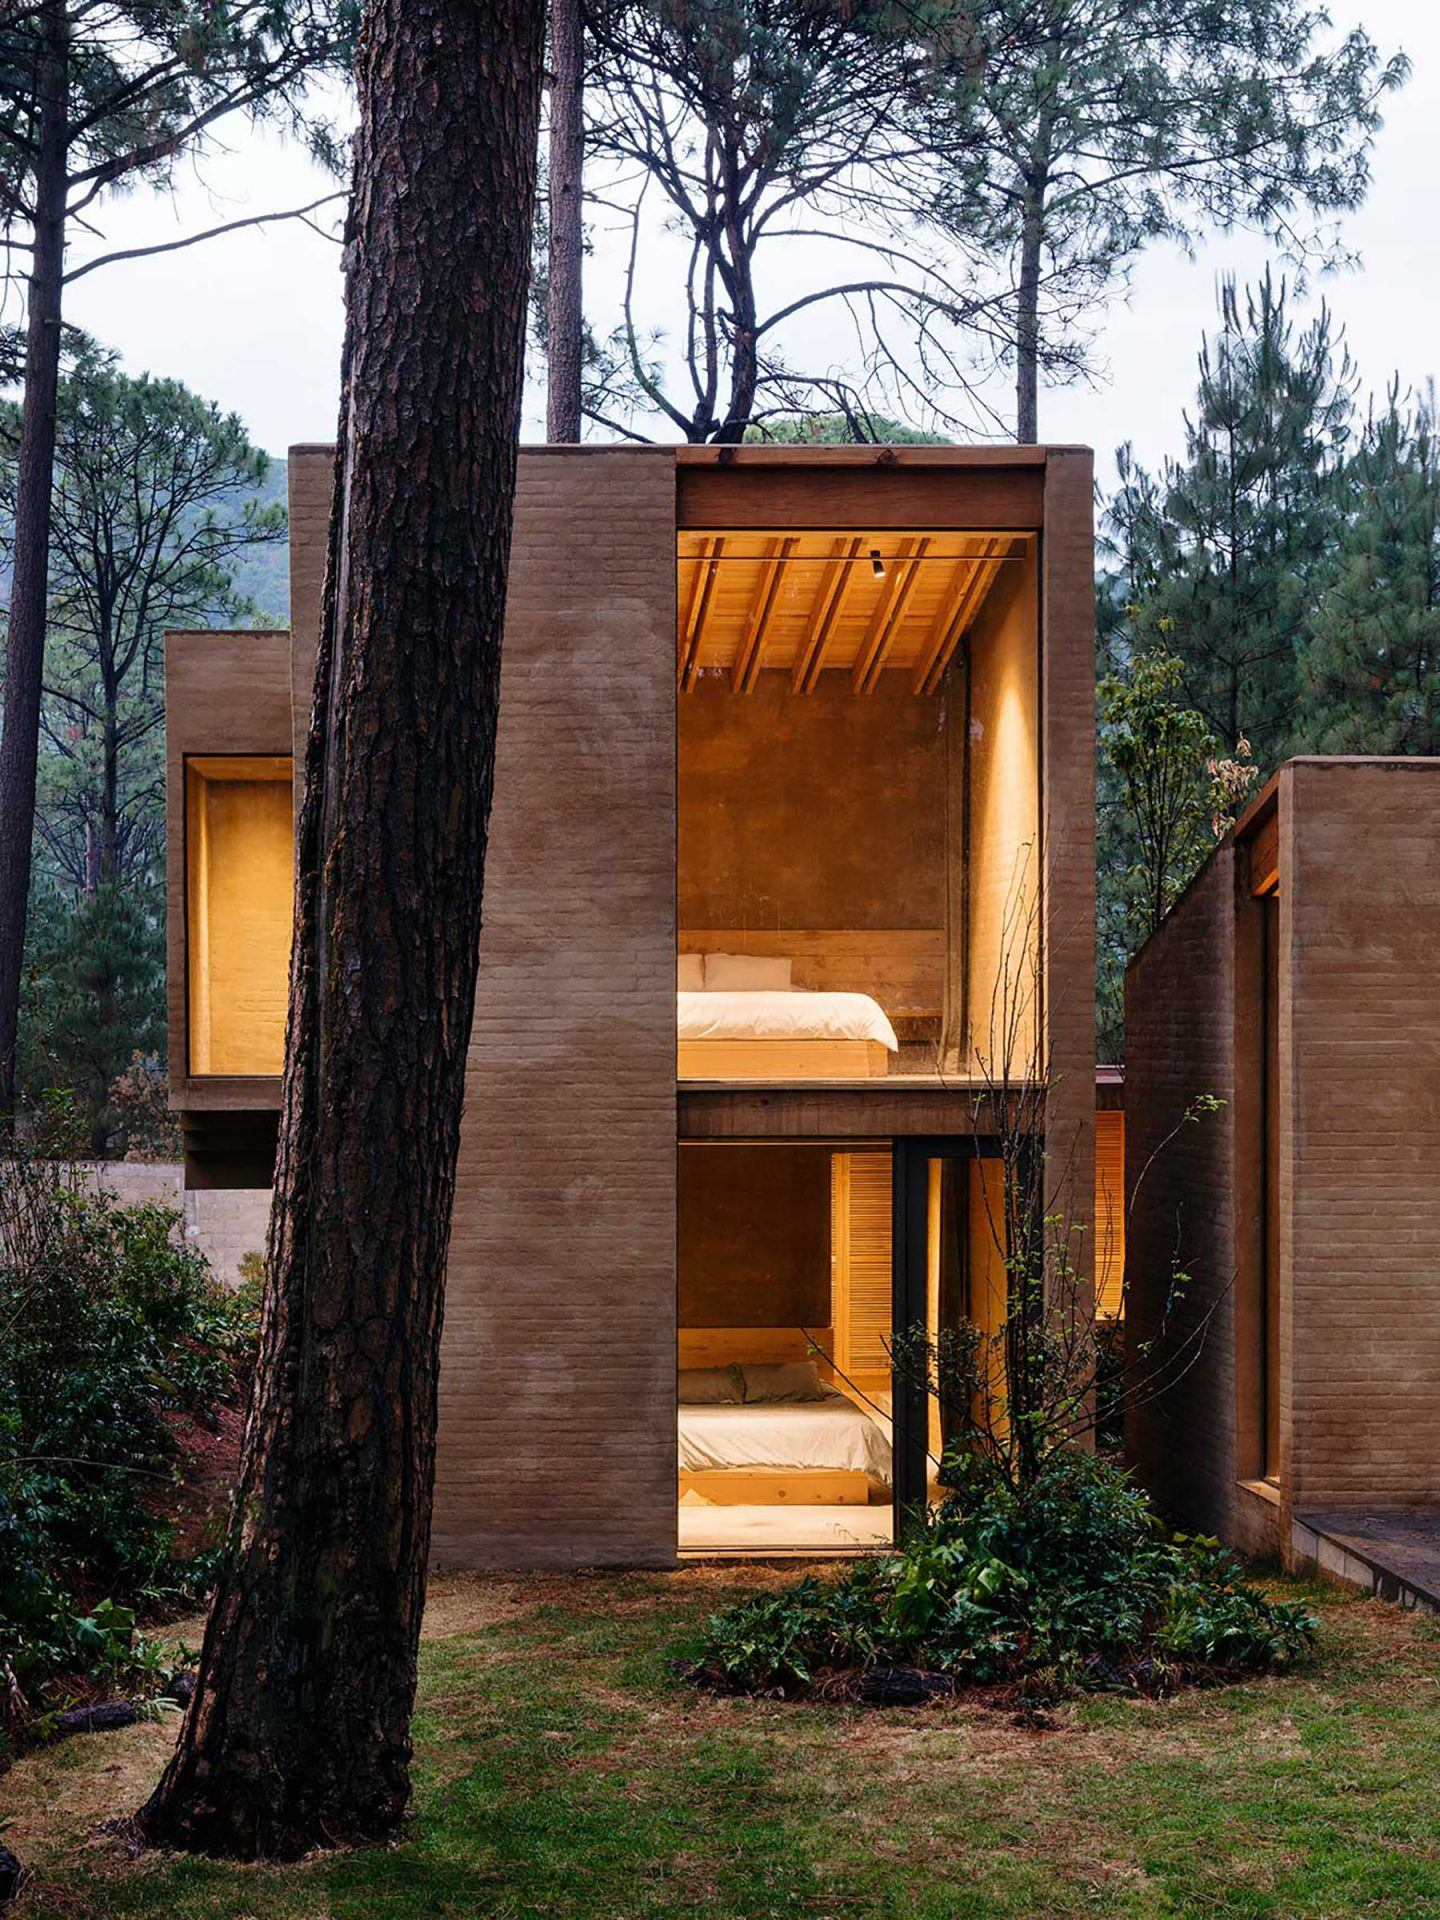 IGNANT-Architecture-Taller-Hector-Barroso-Entre-Pinos-22